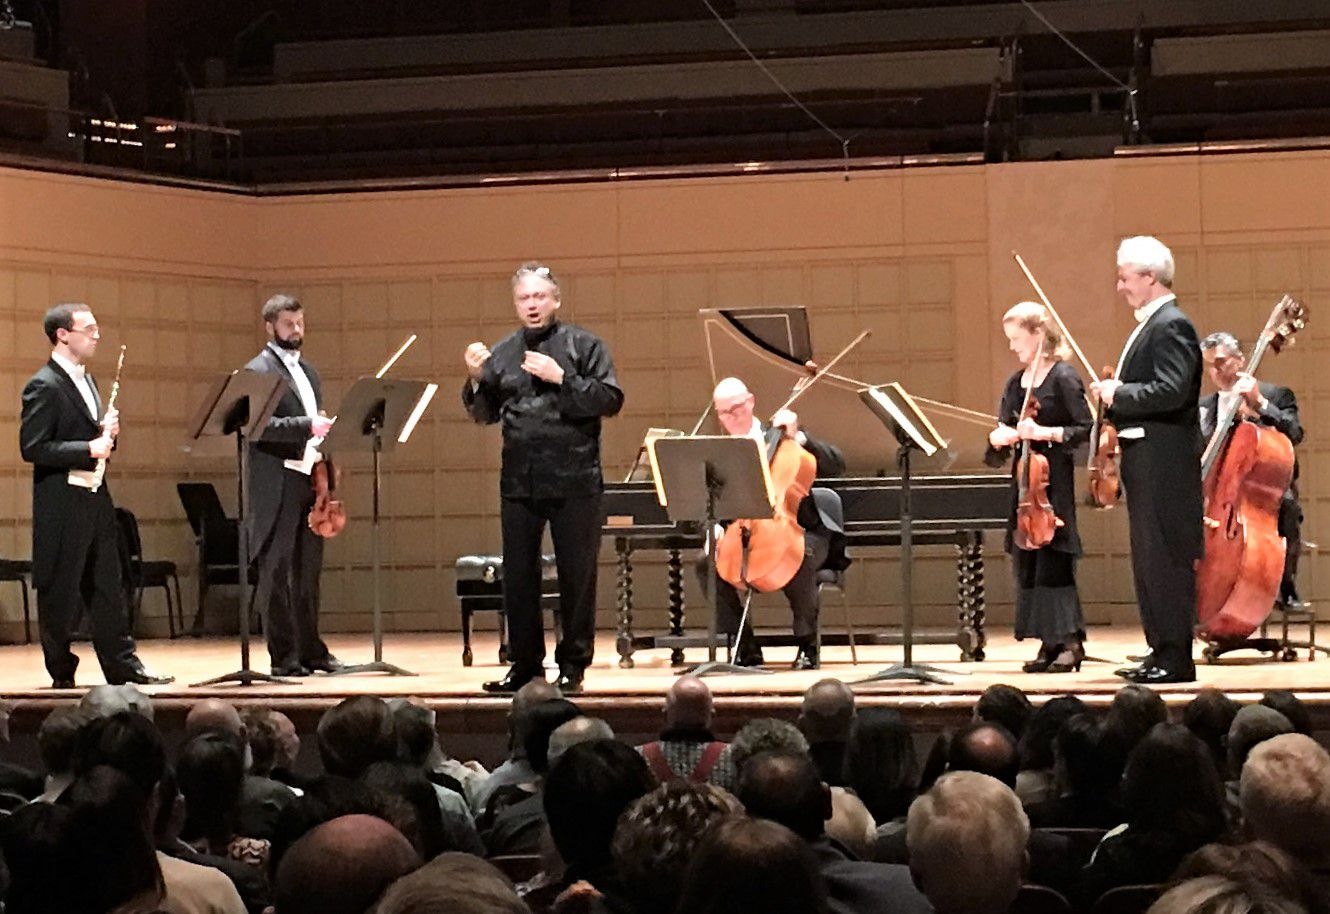 Guest conductor and harpsichordist Richard Egarr introduces a performance of Bach's Fifth Brandenburg Concerto with Dallas Symphony Orchestra musicians, left to right, David Buck (flute), Nathan Olson (violin), Christopher Adkins (cello), Barbara Sudweeks (viola), Gary Levinson (violin) and Nicolas Tsolainos (bass) at the Meyerson Symphony Center on March 22, 2018.